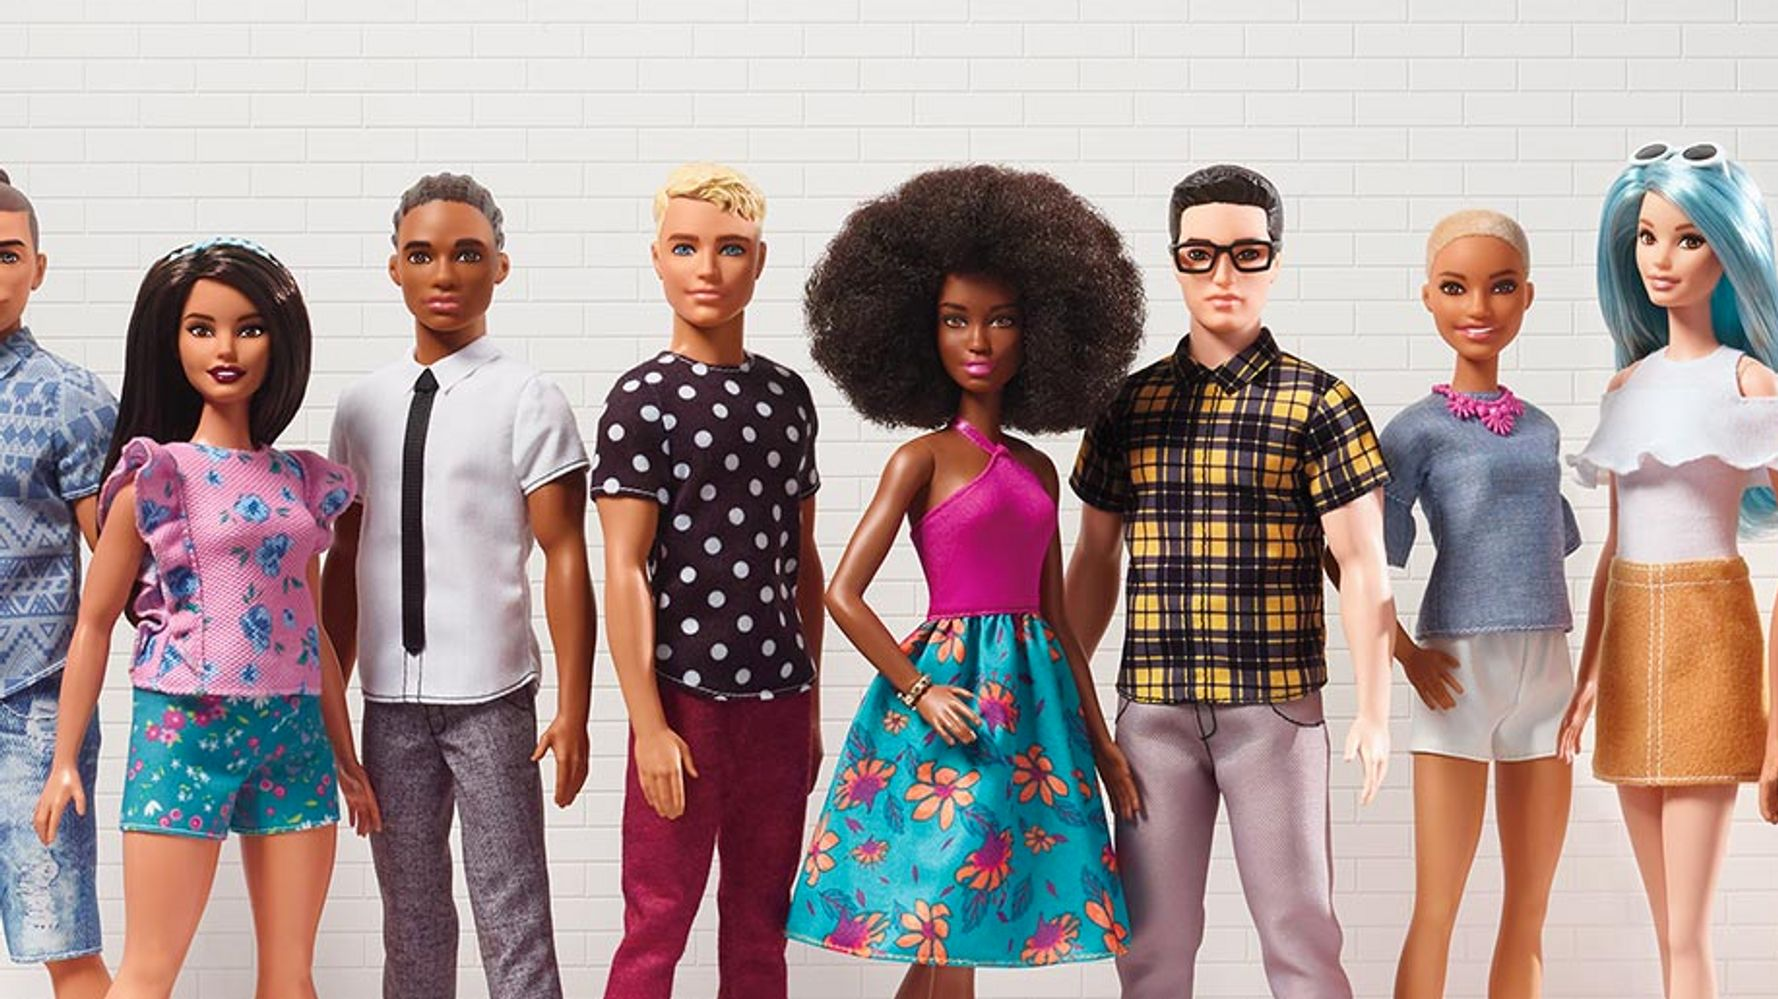 40 New Barbie And Ken Dolls Launched By Mattel With